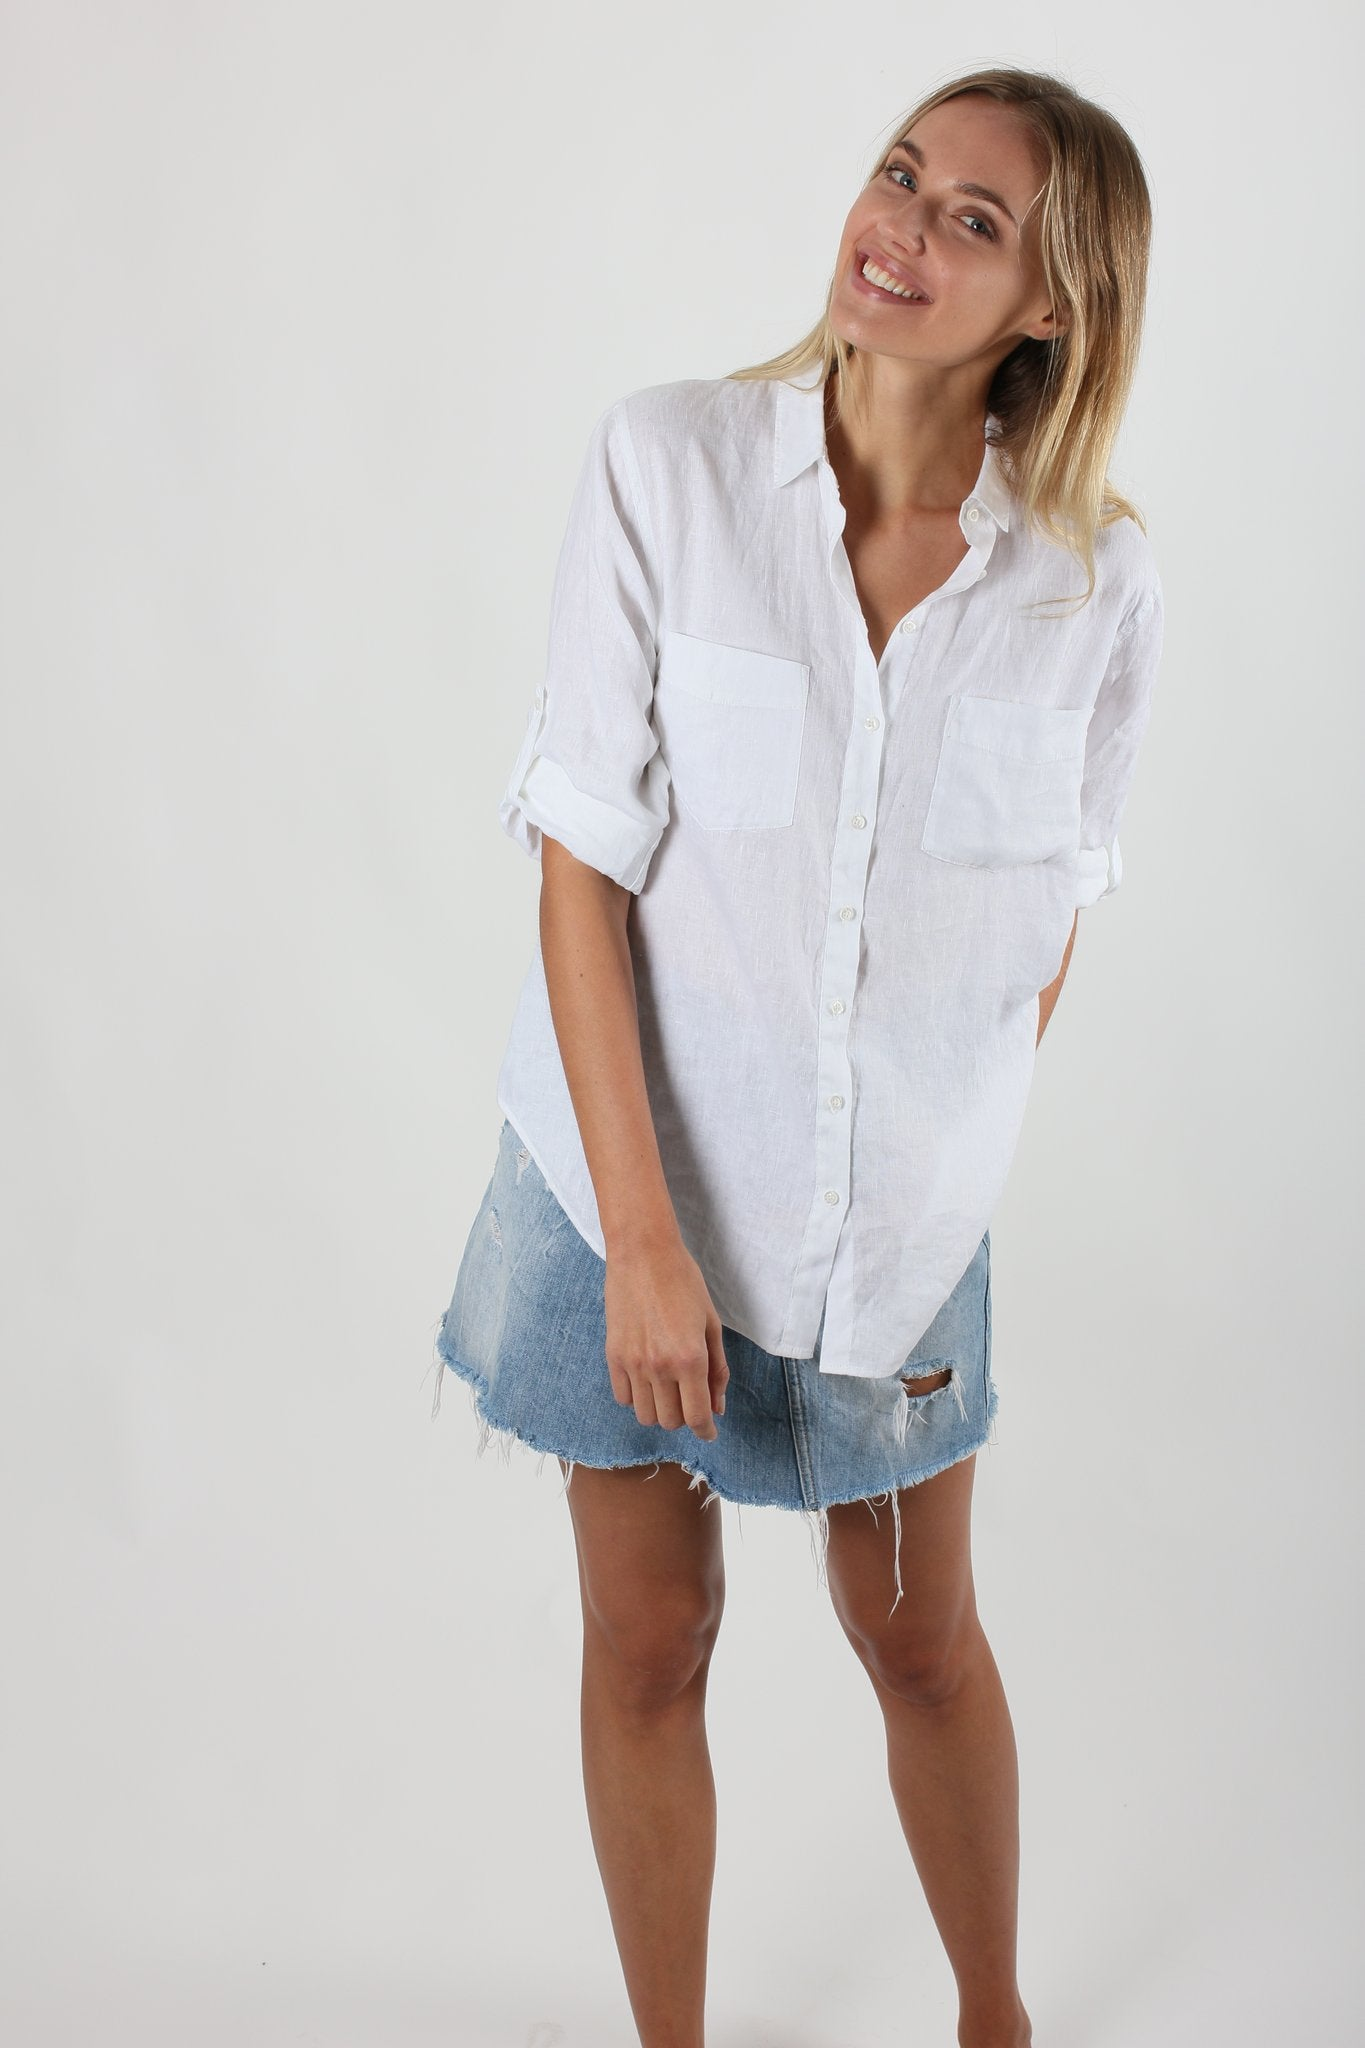 Buttersoft wash linen with collar, two chest pockets, oversized fit. Tab sleeves with back darts.